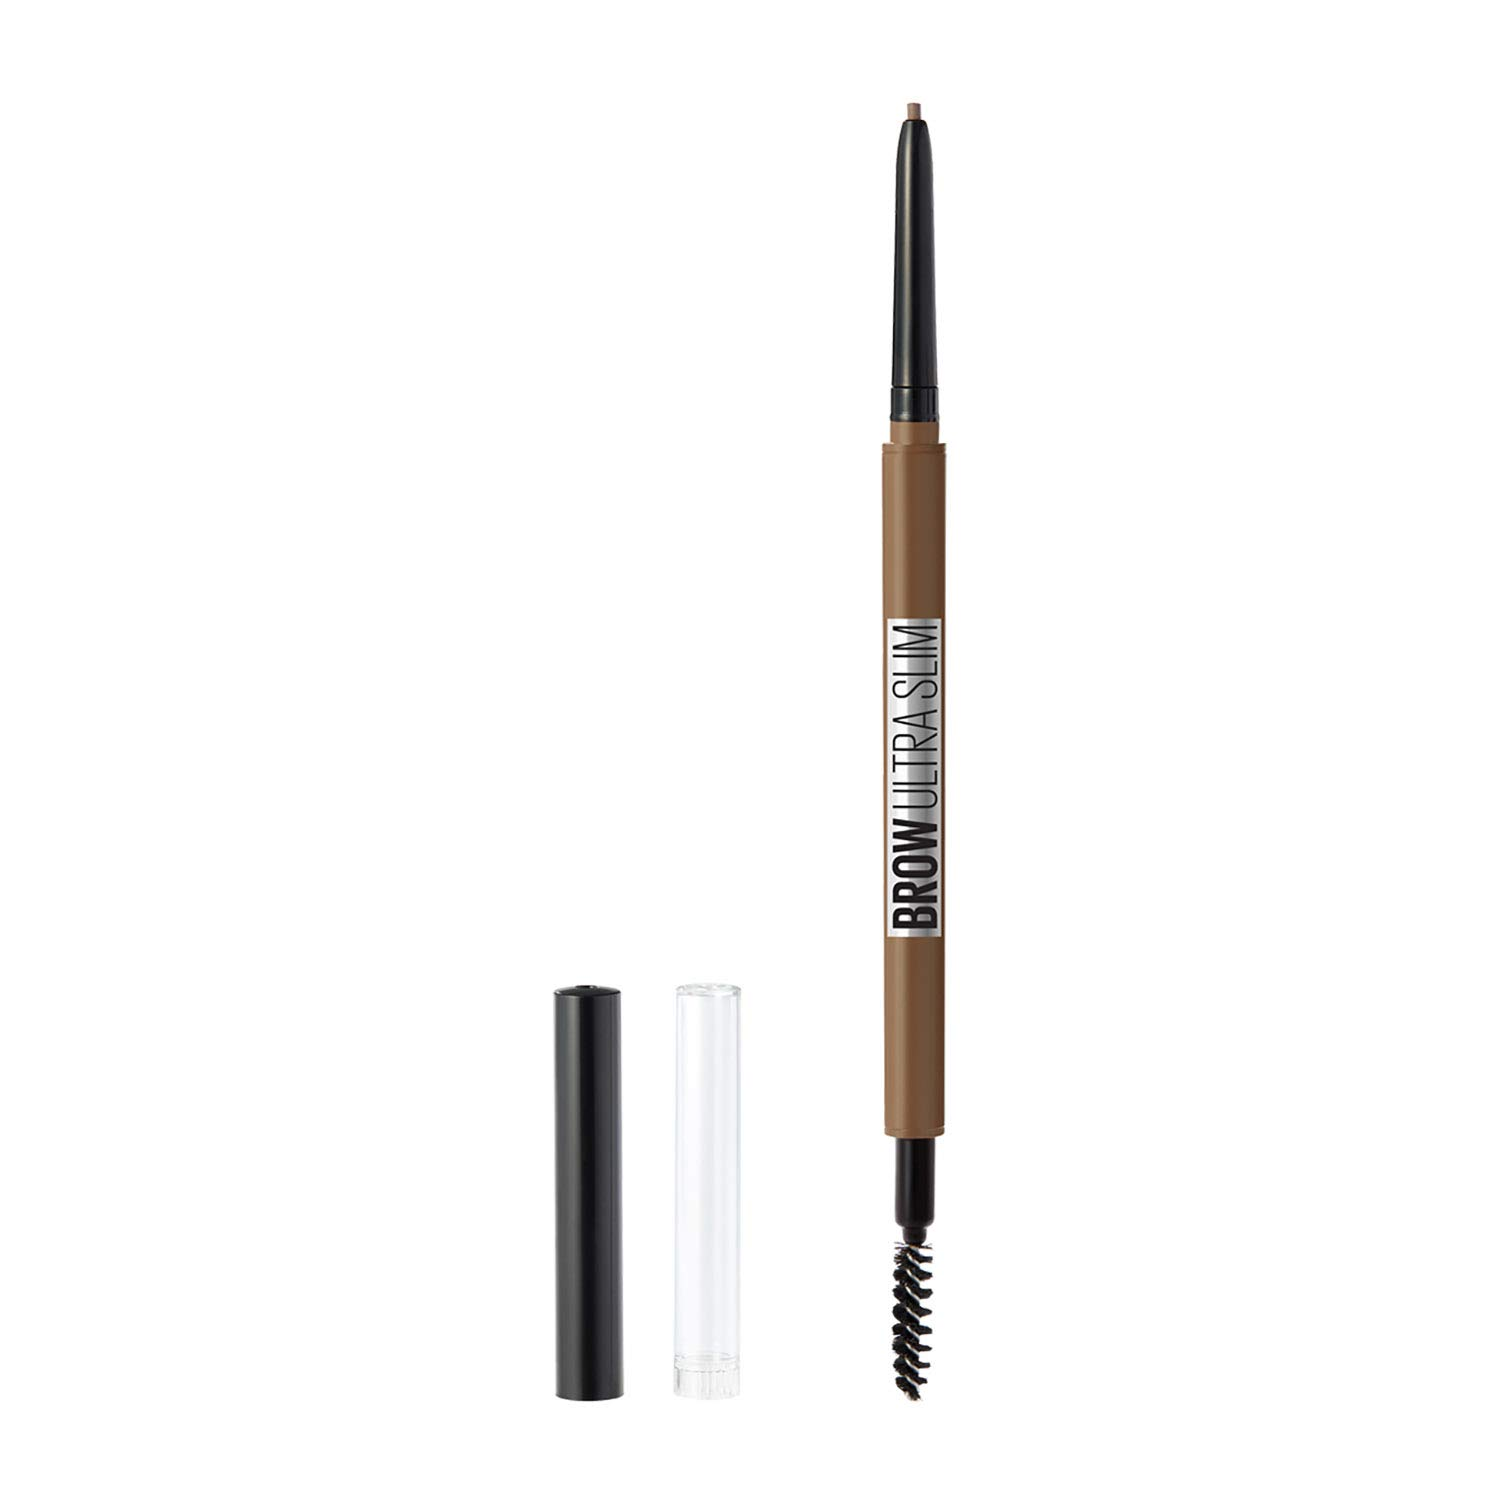 Maybelline New York Brow ultra slim defining eyebrow pencil, Soft Brown, 0.003 Ounce